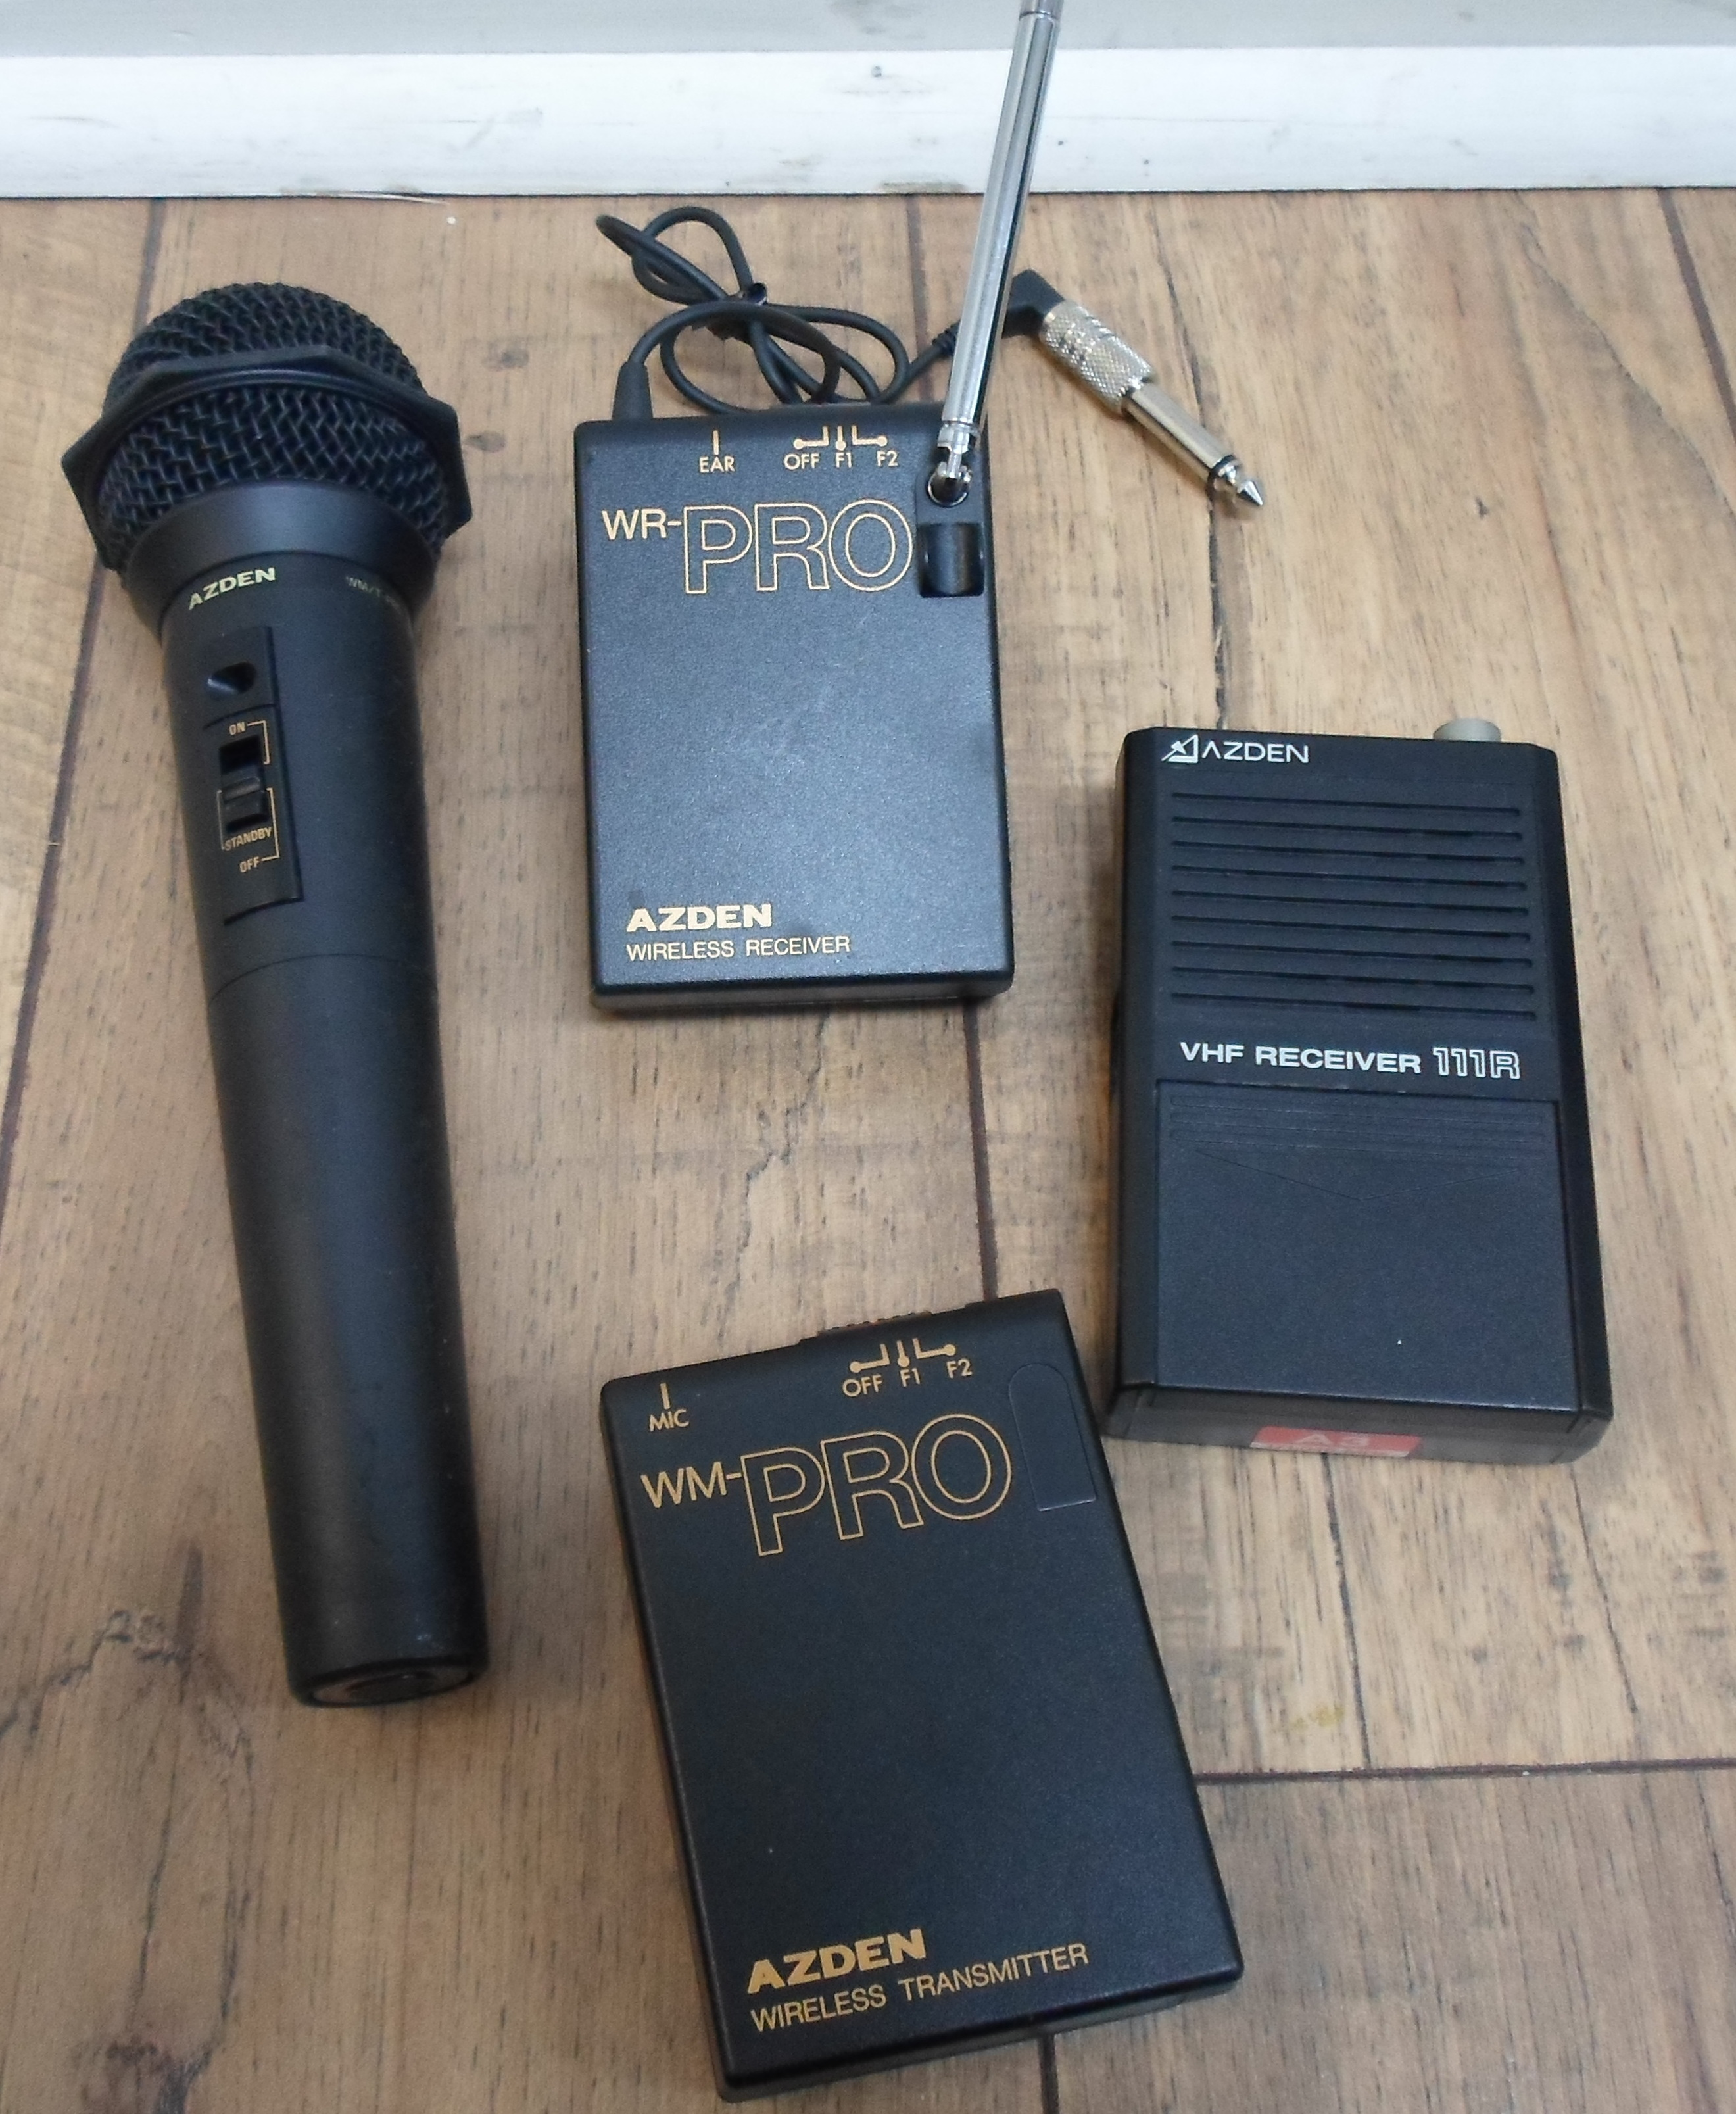 AZDEN - WM/T-PRO MIC WITH 2 TRANSMITTERS AND RECEIVE